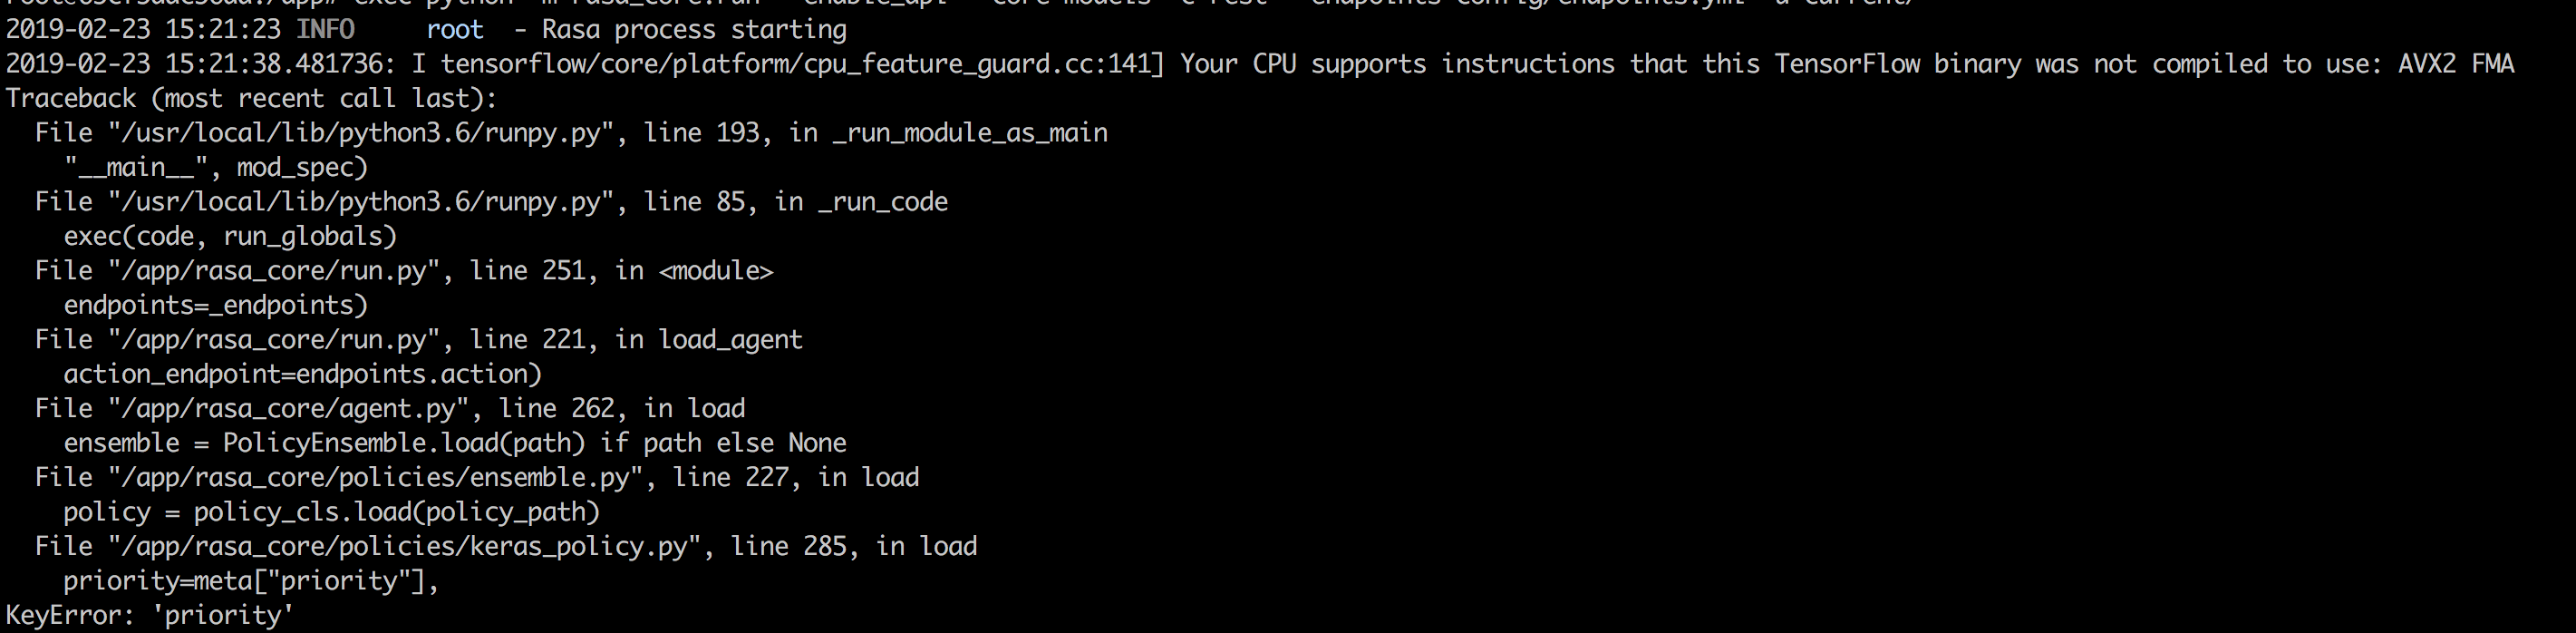 Error: Your CPU supports instructions that this TensorFlow